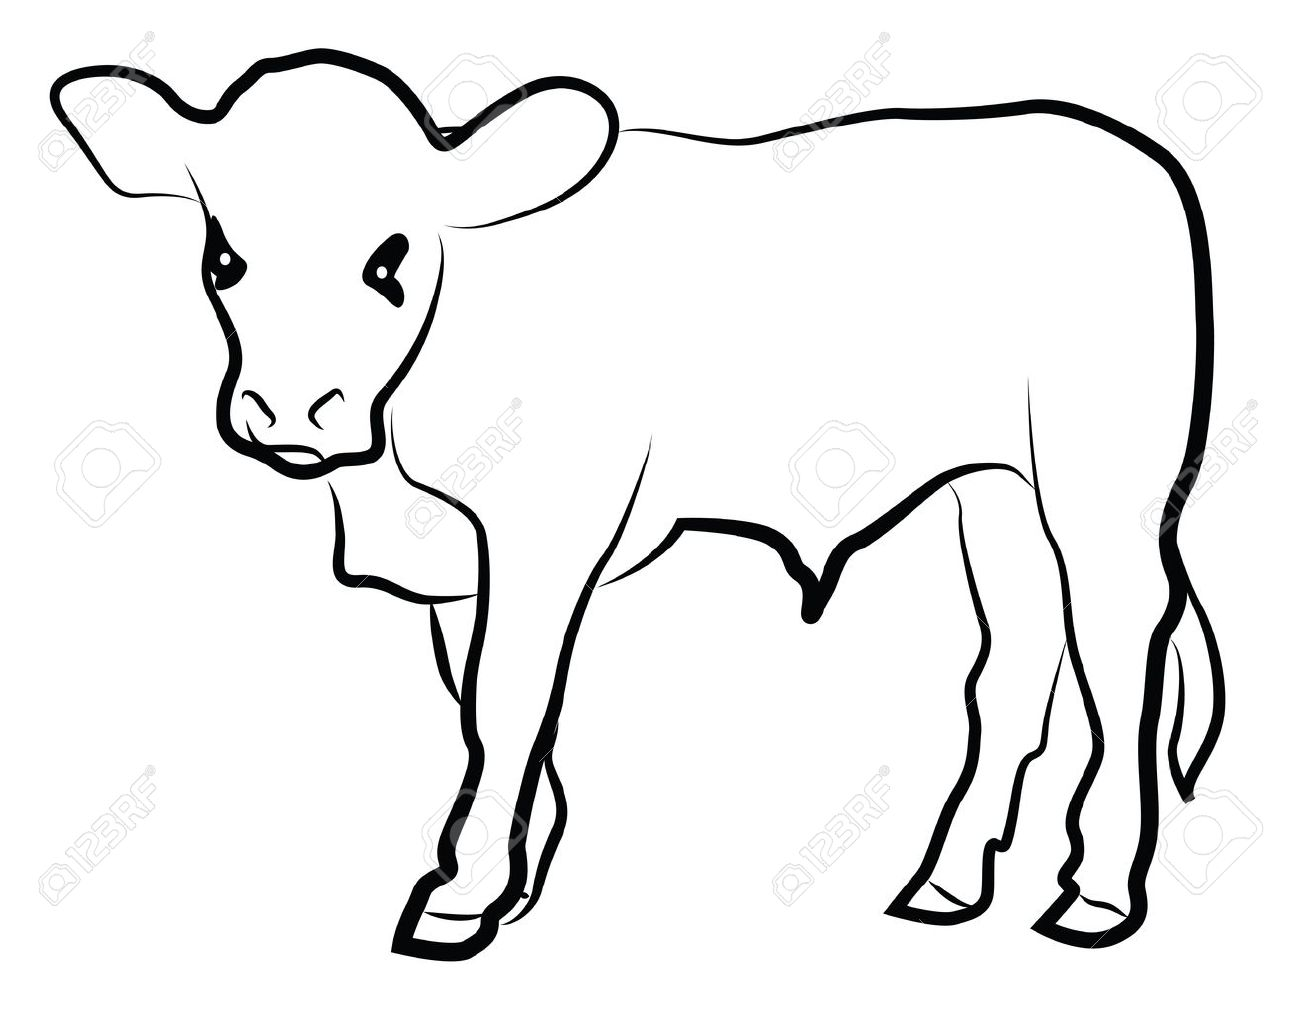 1300x1012 Calf Silhouette Isolated On White Royalty Free Cliparts, Vectors